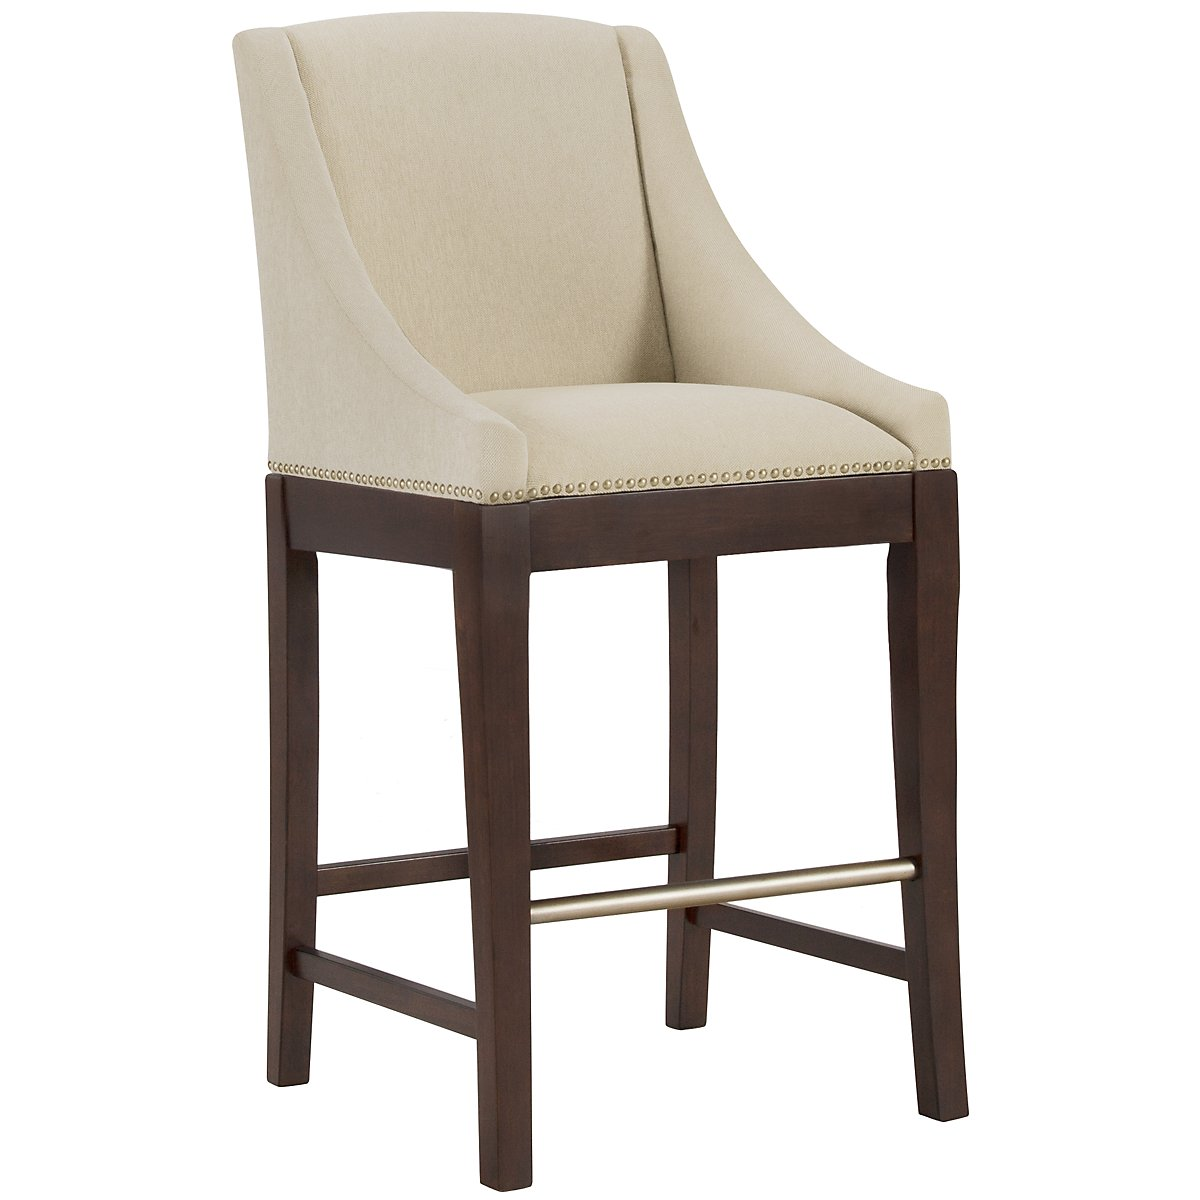 "Canyon2 Dark Tone 30"" Upholstered Barstool"